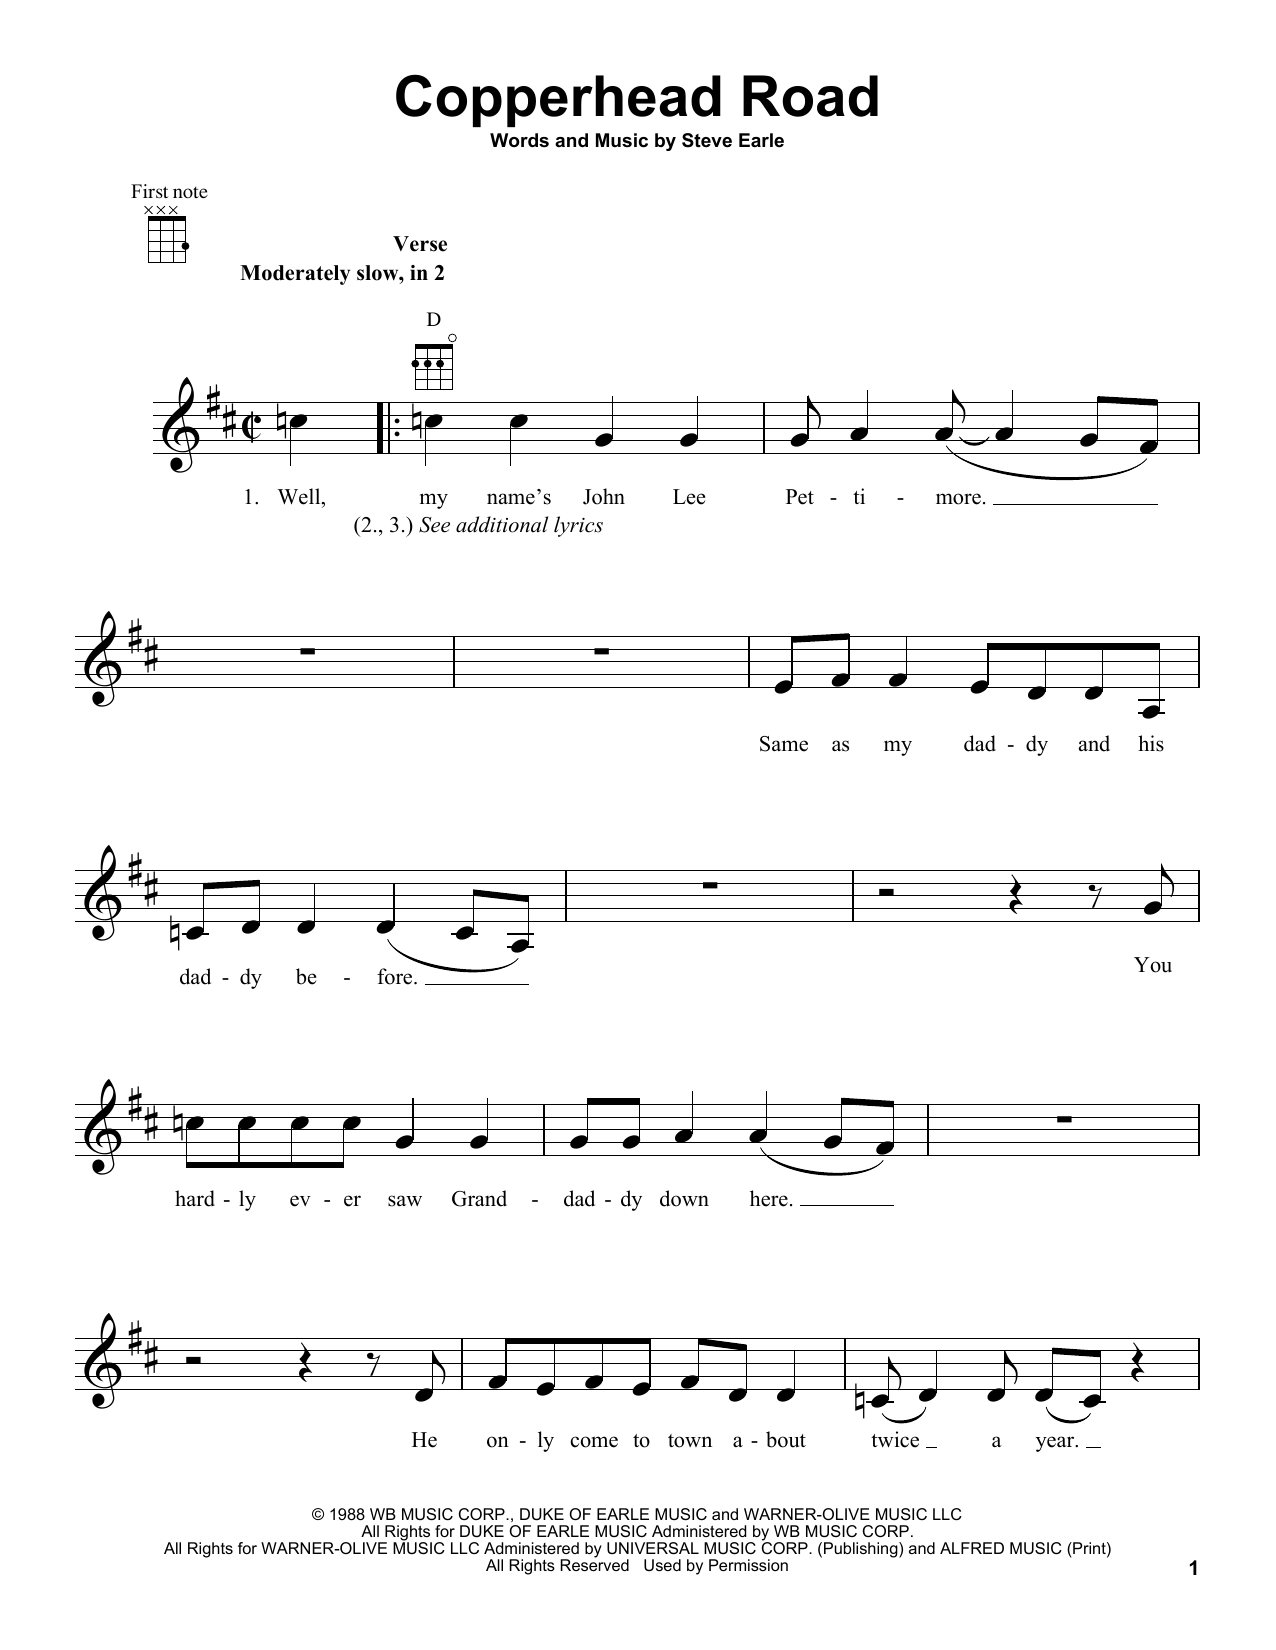 Steve Earle Copperhead Road sheet music notes and chords. Download Printable PDF.